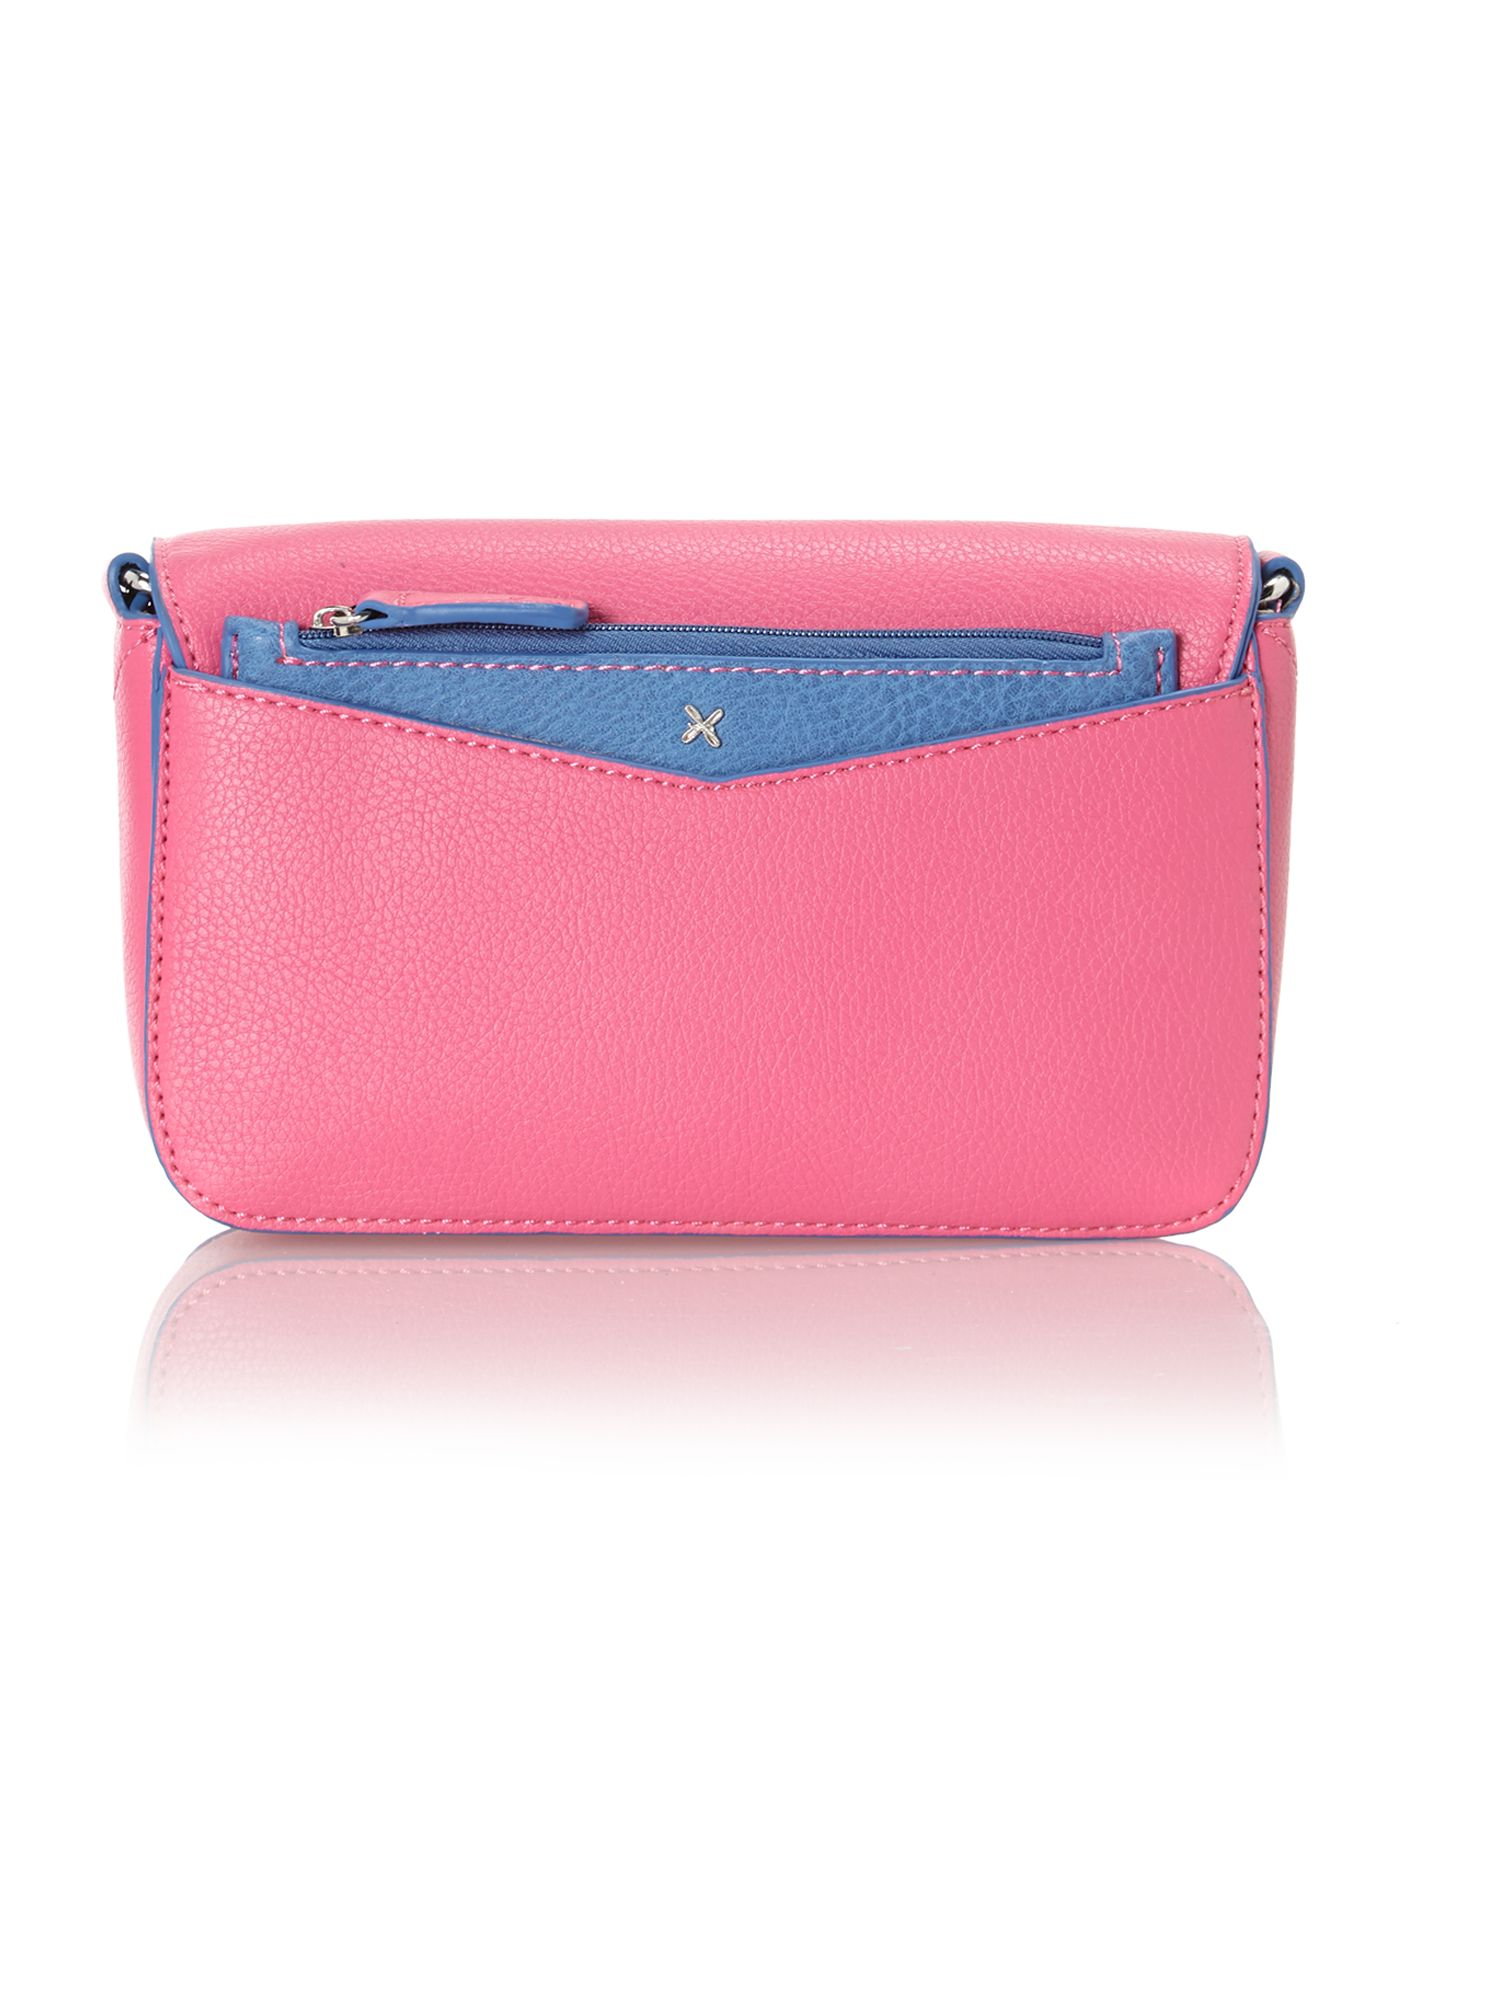 Perry pink cross body bag